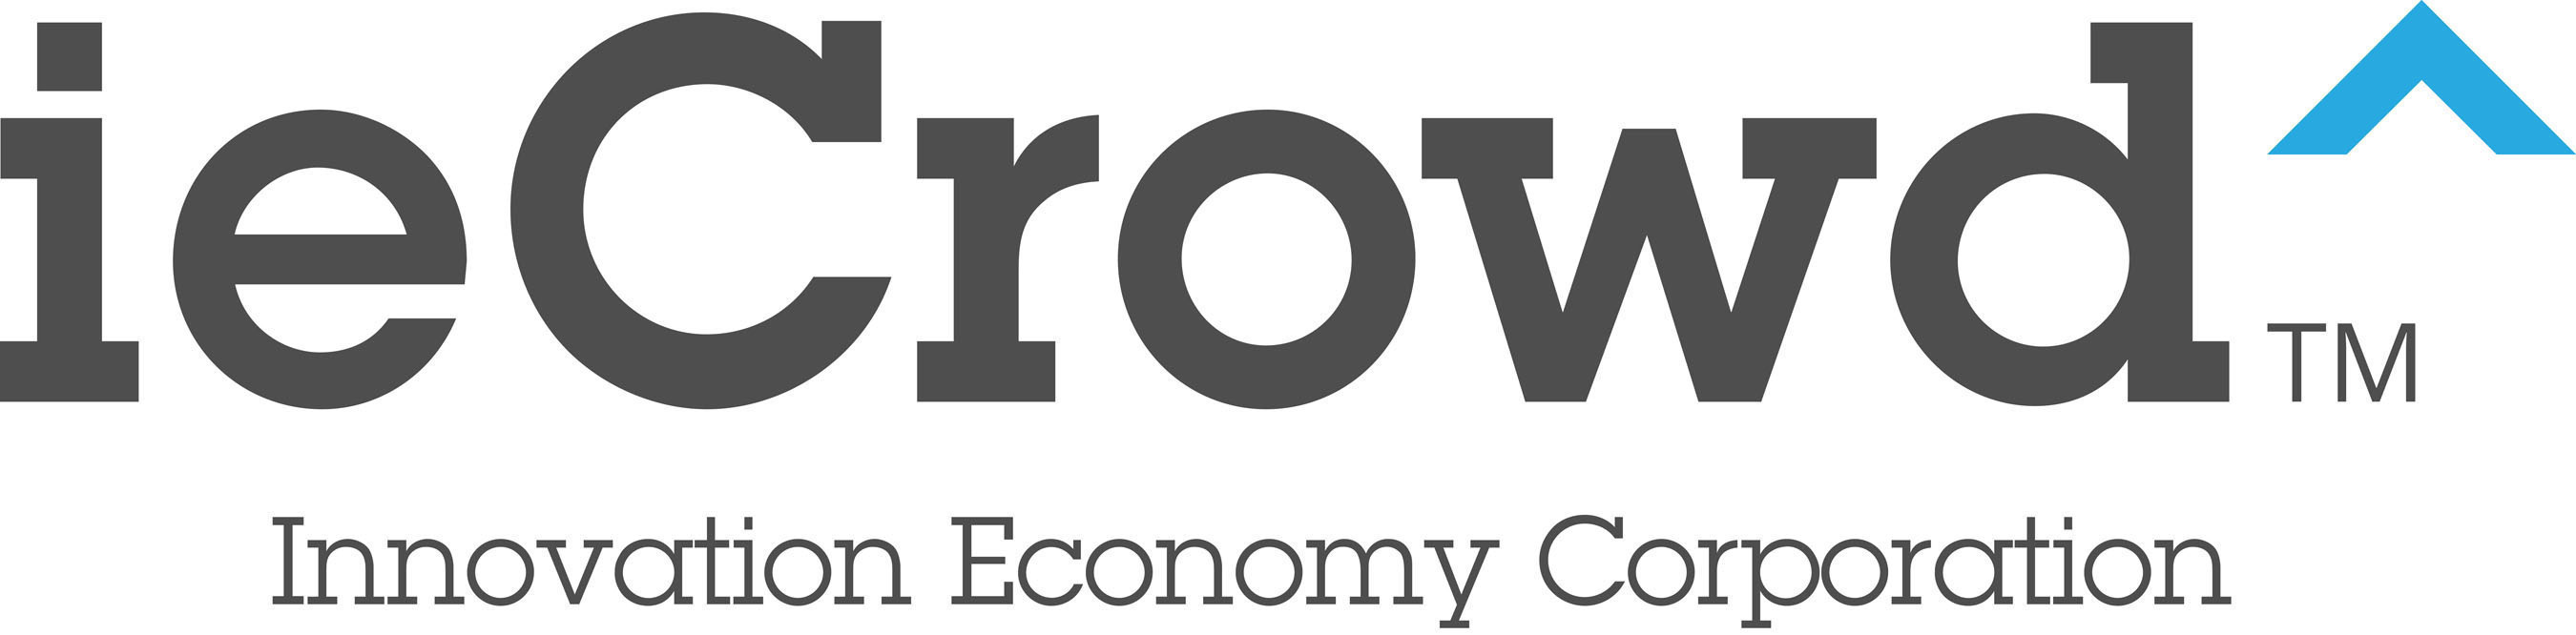 ieCrowd(TM) is an emerging growth company seeking to bring the world together to unlock the potential of untapped innovations. ieCrowd aligns itself with universities and research institutions to secure the rights to develop life, health and wellness innovations into future products. Founded in 2010, ieCrowd is building a global ecosystem, based on a Collaborative Economy model, that includes investors, universities, companies, individuals and others - all committed to supporting ieCrowd's vision.